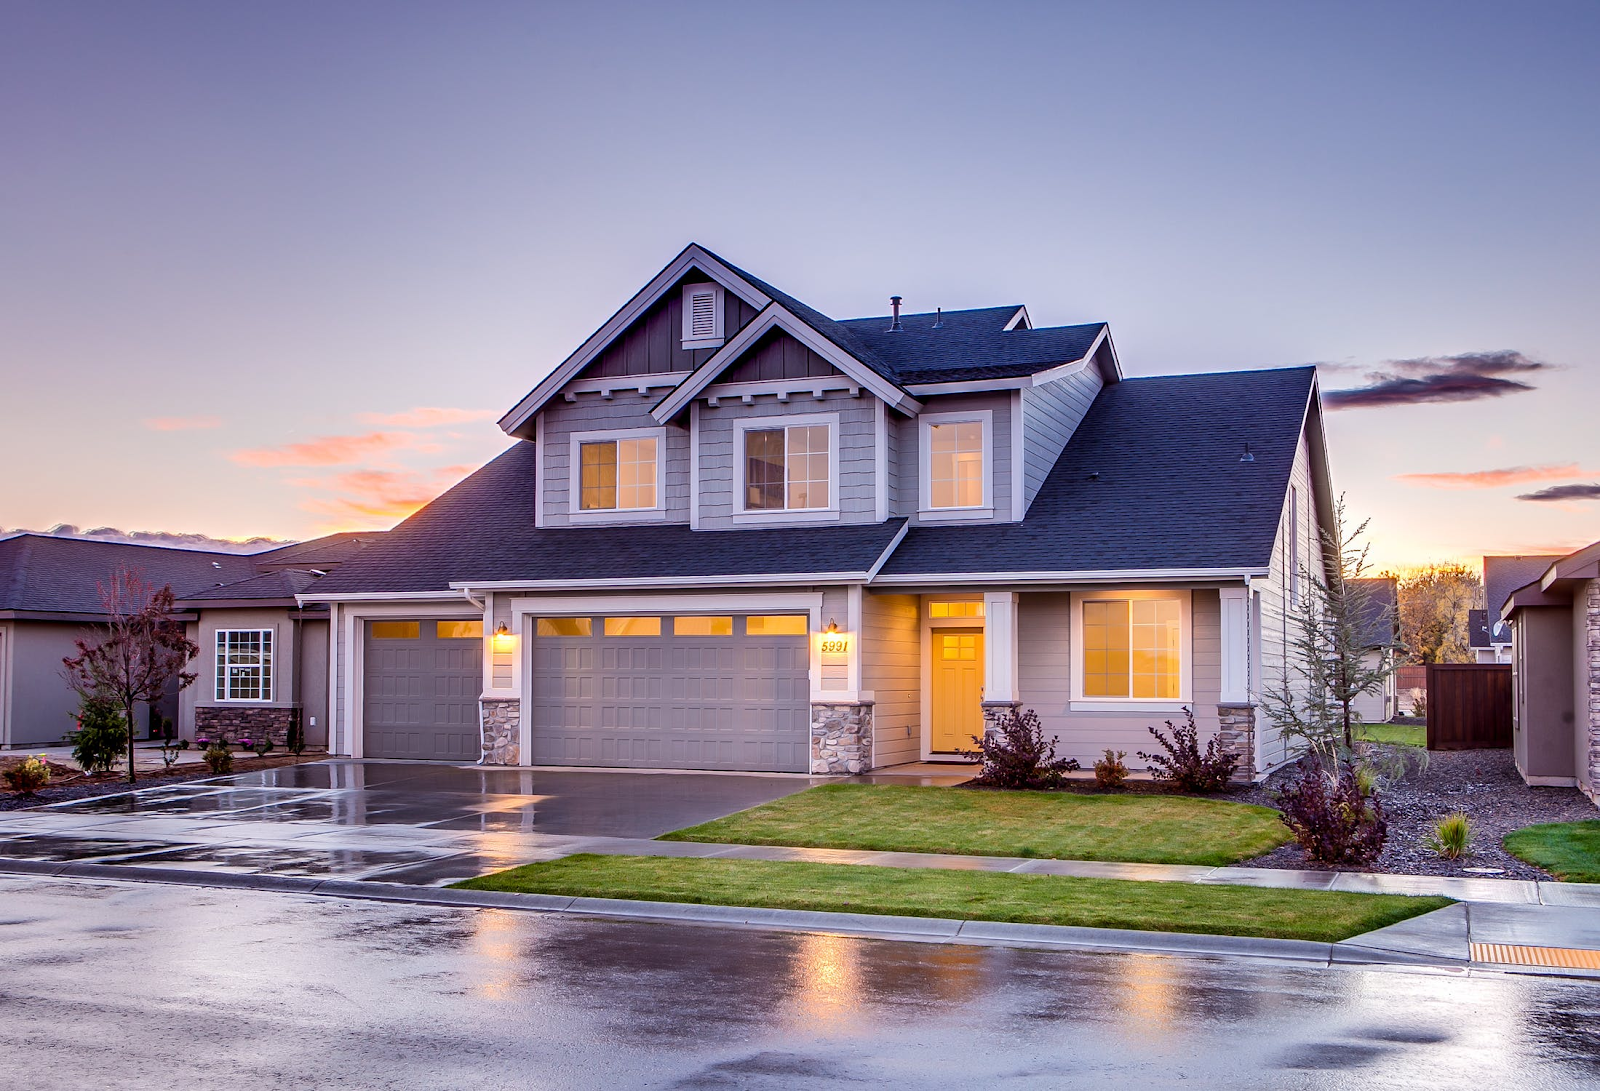 How to Turn Your Property Into a True Passive Income Source